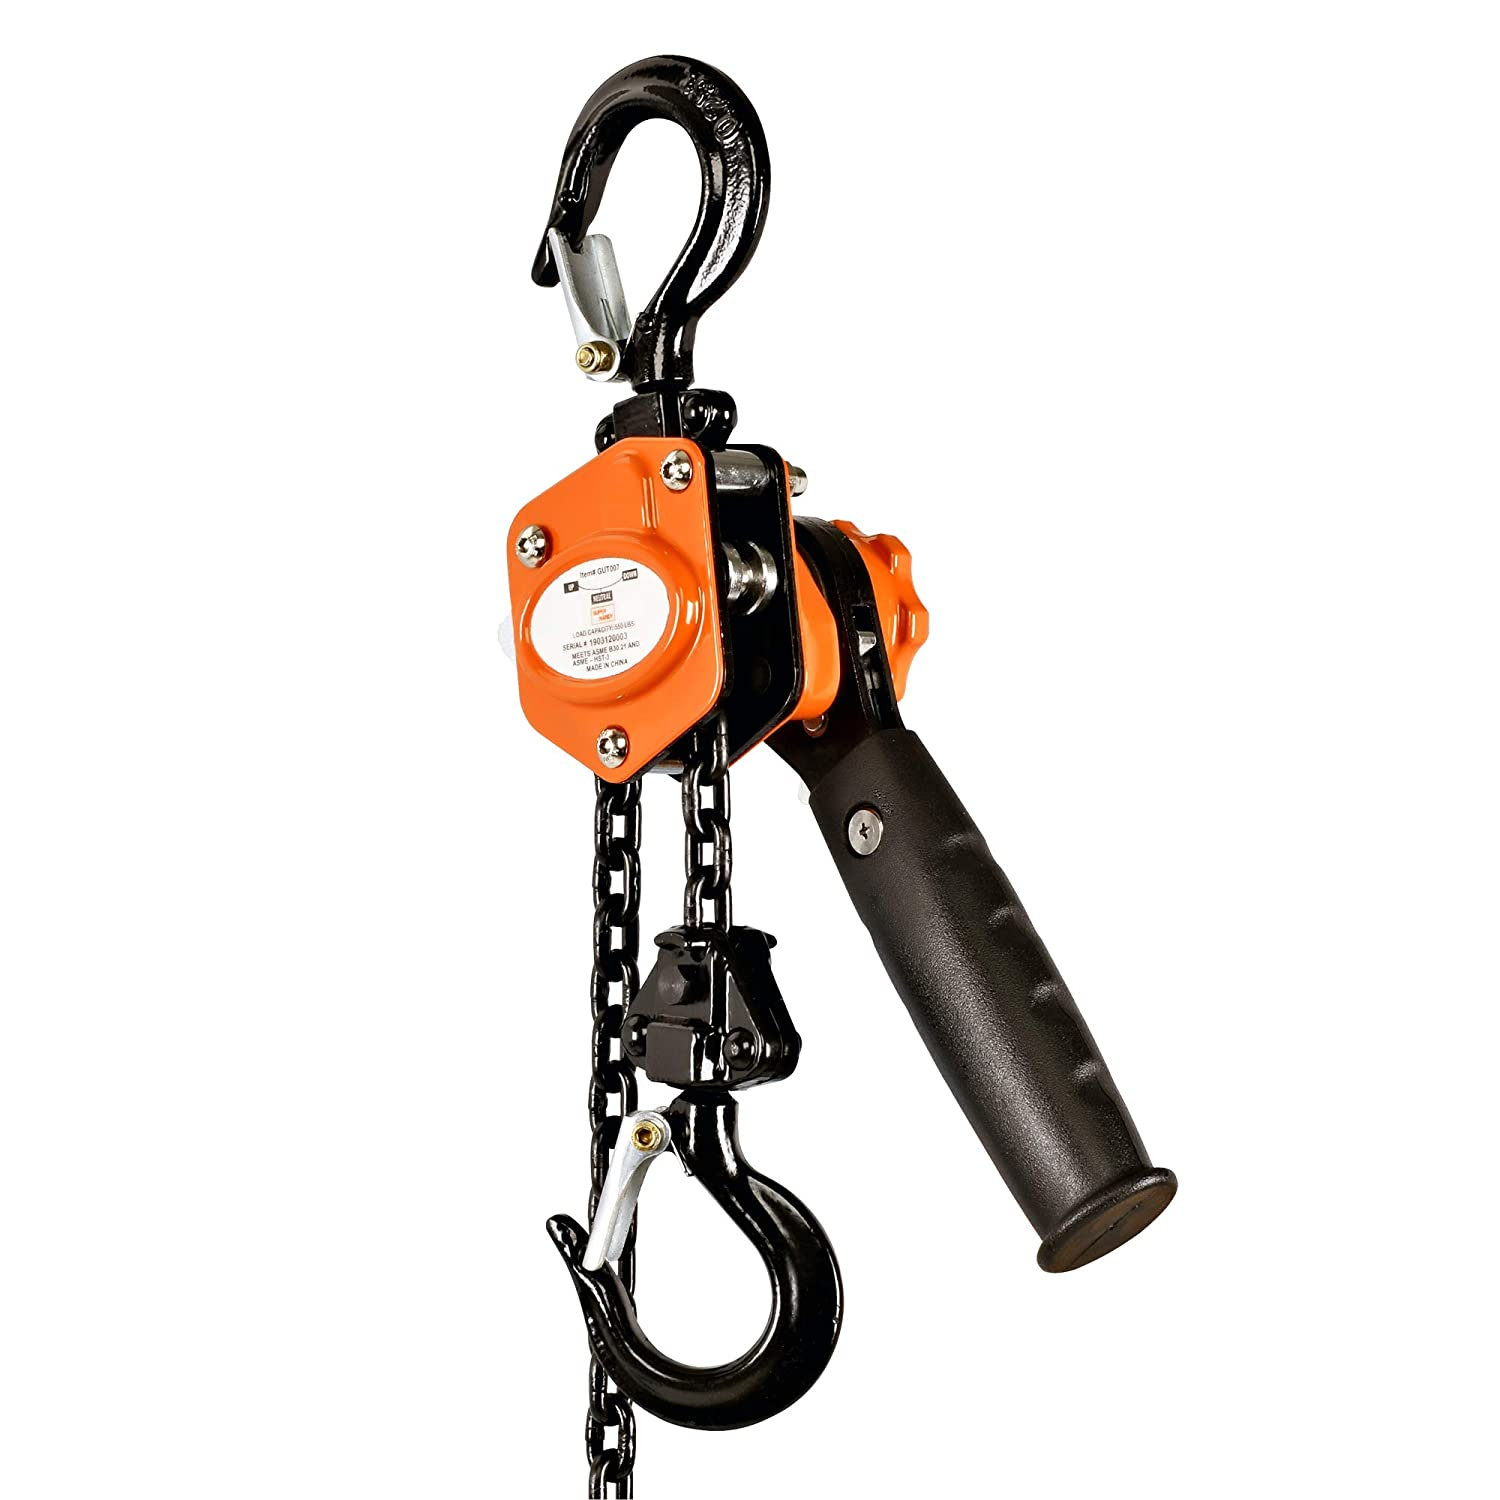 SuperHandy Mini Lever Hoist Come Along 1/4 TON 550 LBS Capacity 5FT Lift 2  Heavy Duty Hooks Commercial Grade Steel for Lifting Pulling Construction